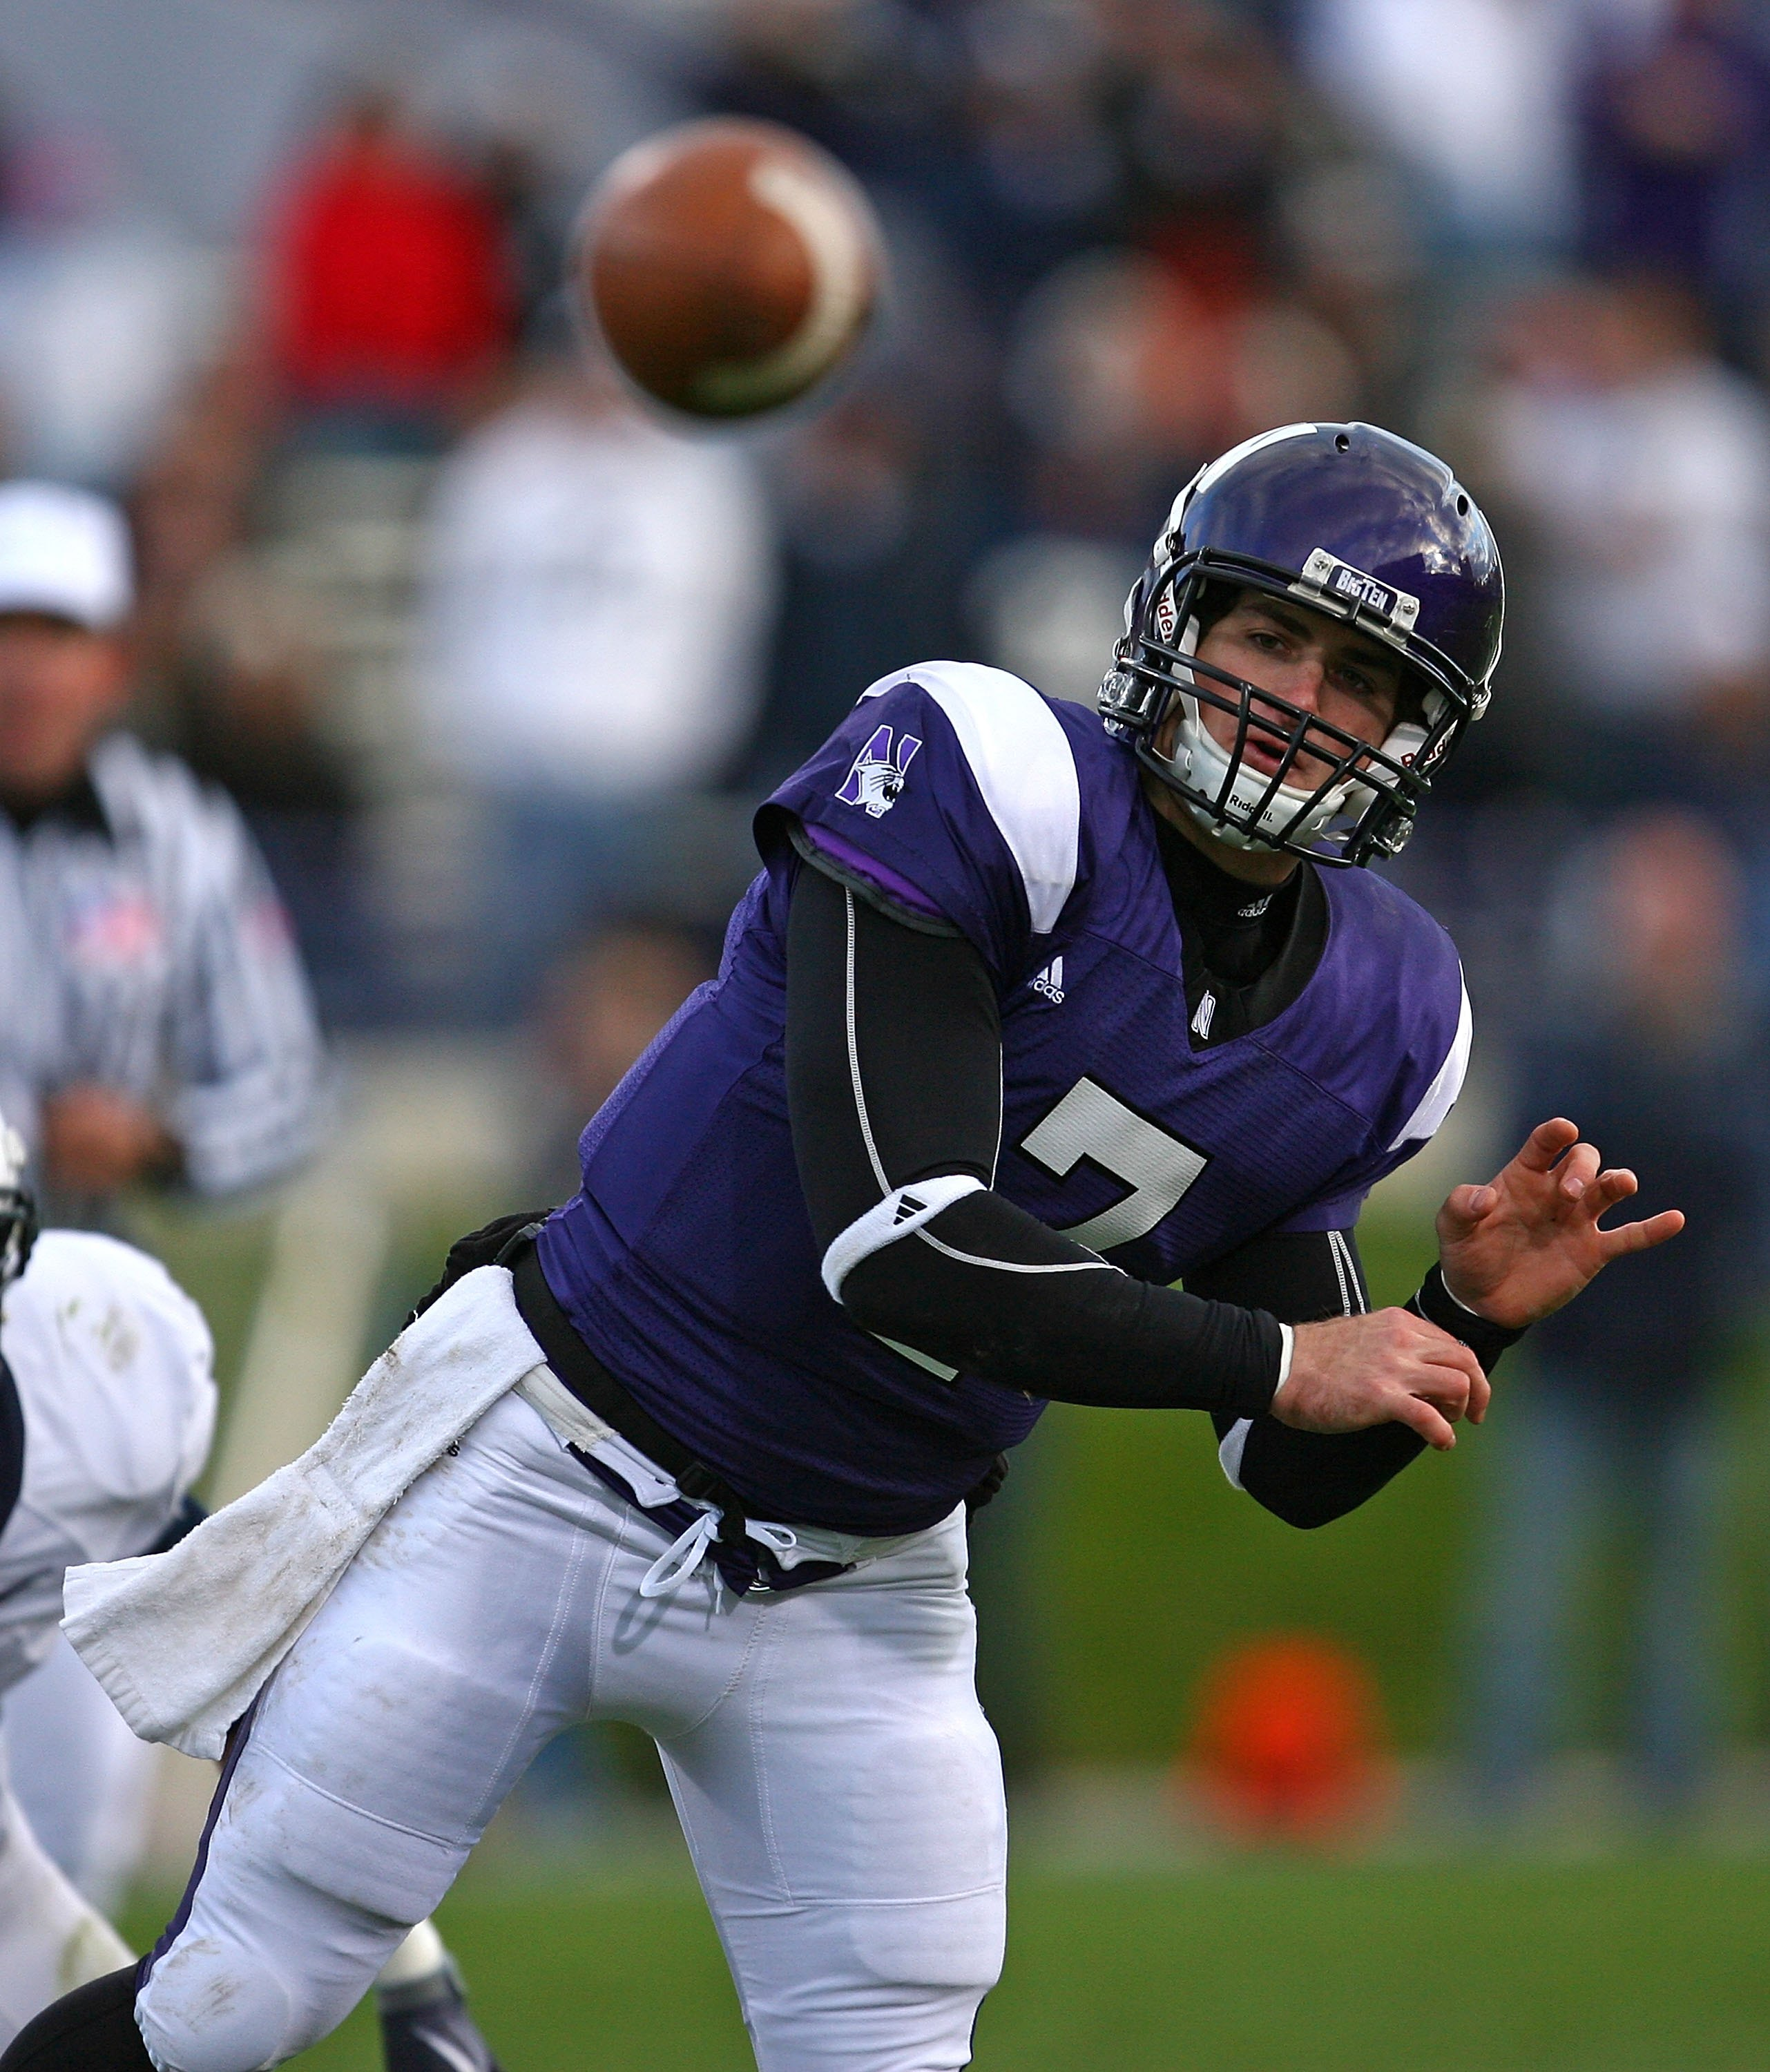 Dan Persa was nearly perfect for the Wildcats